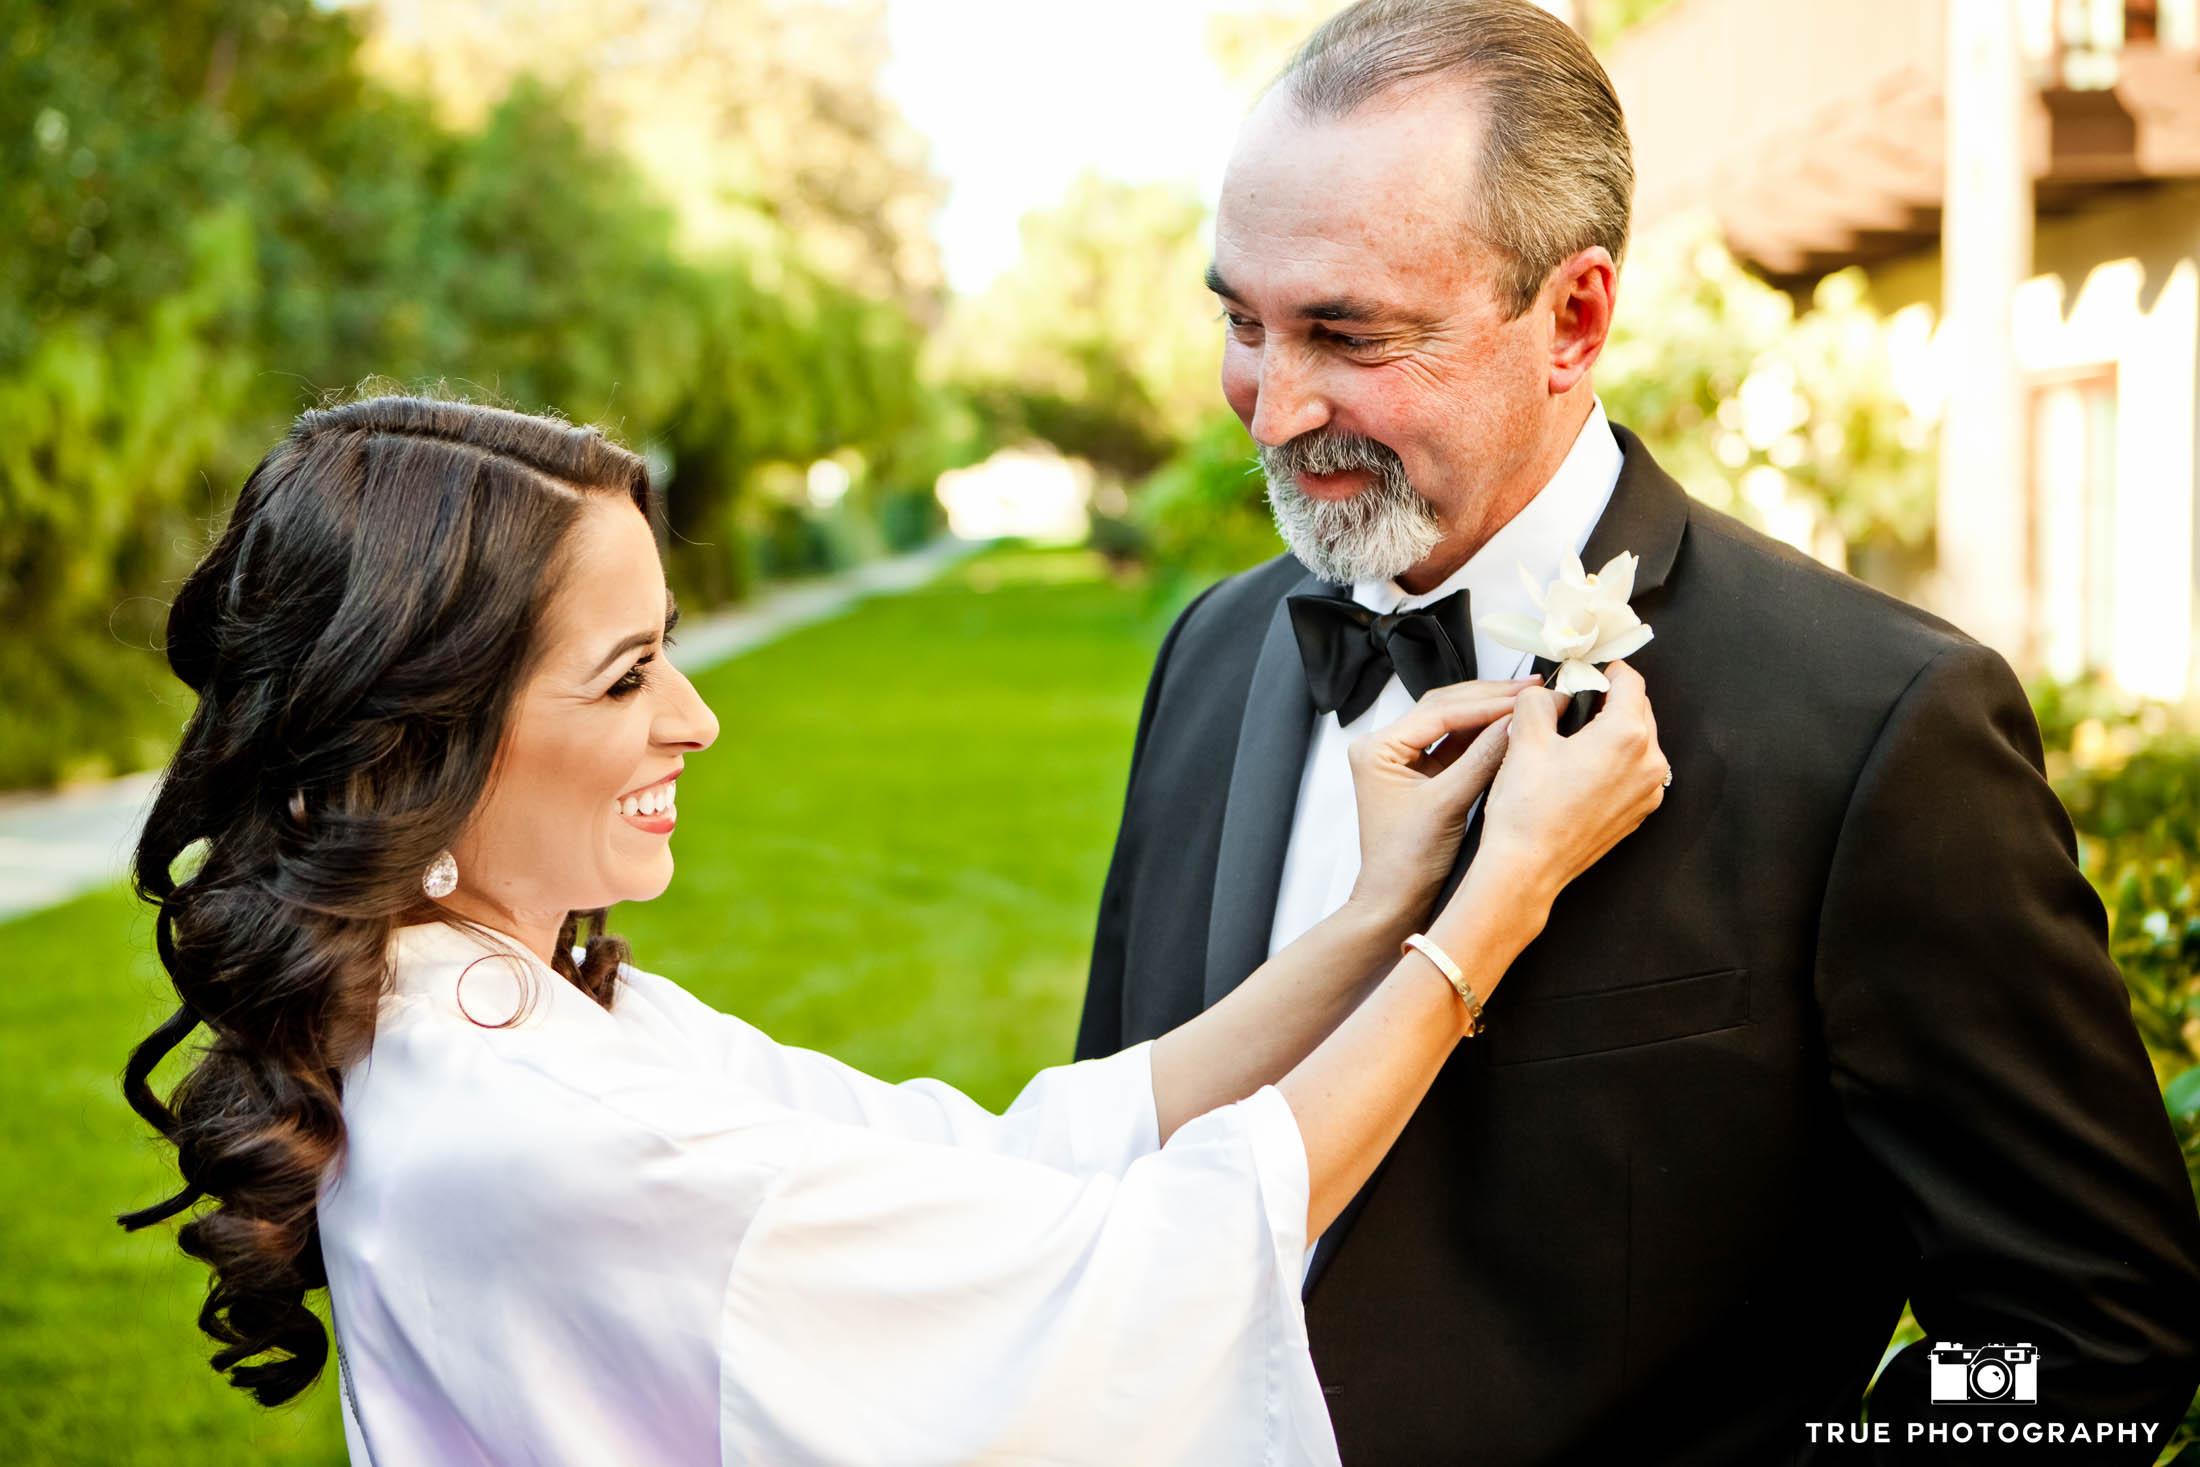 Cute moment with Bride looking at Dad as she puts on his boutonniere